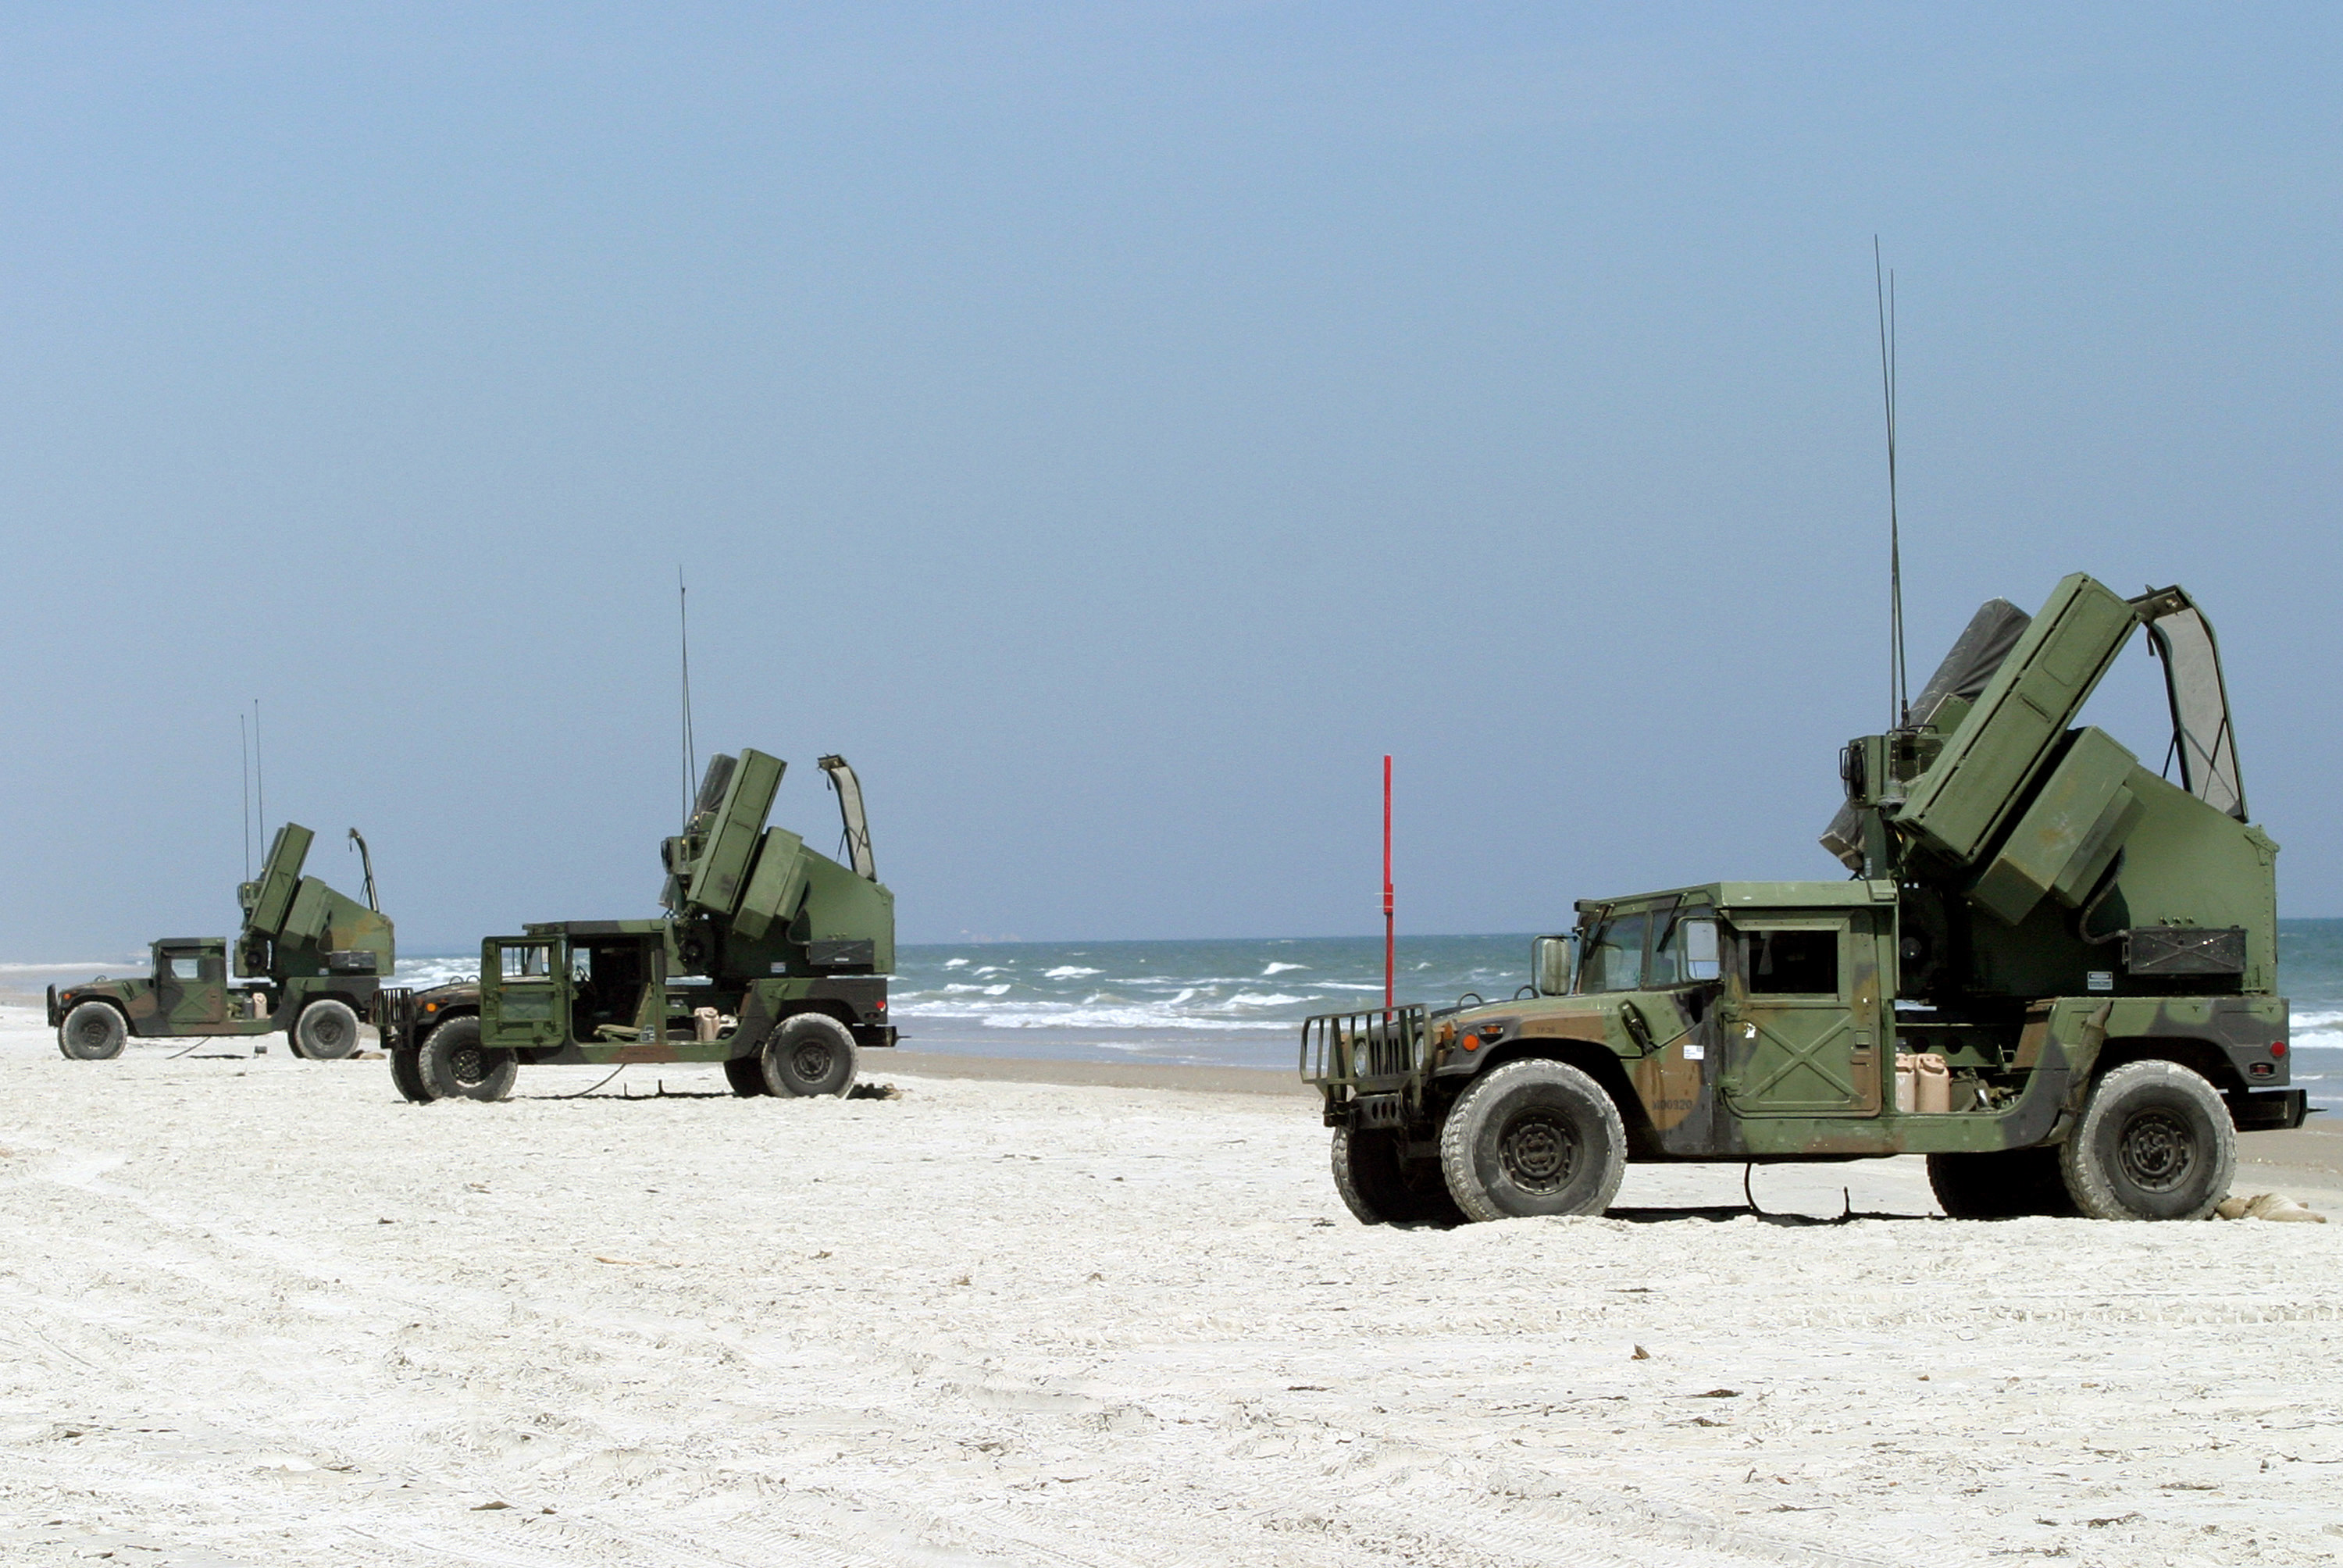 Three US Marine Corps (USMC) M1097 ÒAvenger,Ó Pedestal Mounted Stinger System, assigned to Alpha Company, 2nd Low Altitude Air Defense (2LAAD) Squadron, in place during the Battalion Fire Exercise (BNFEX), at Onslow Beach, Camp Lejeune, North Carolina (NC).